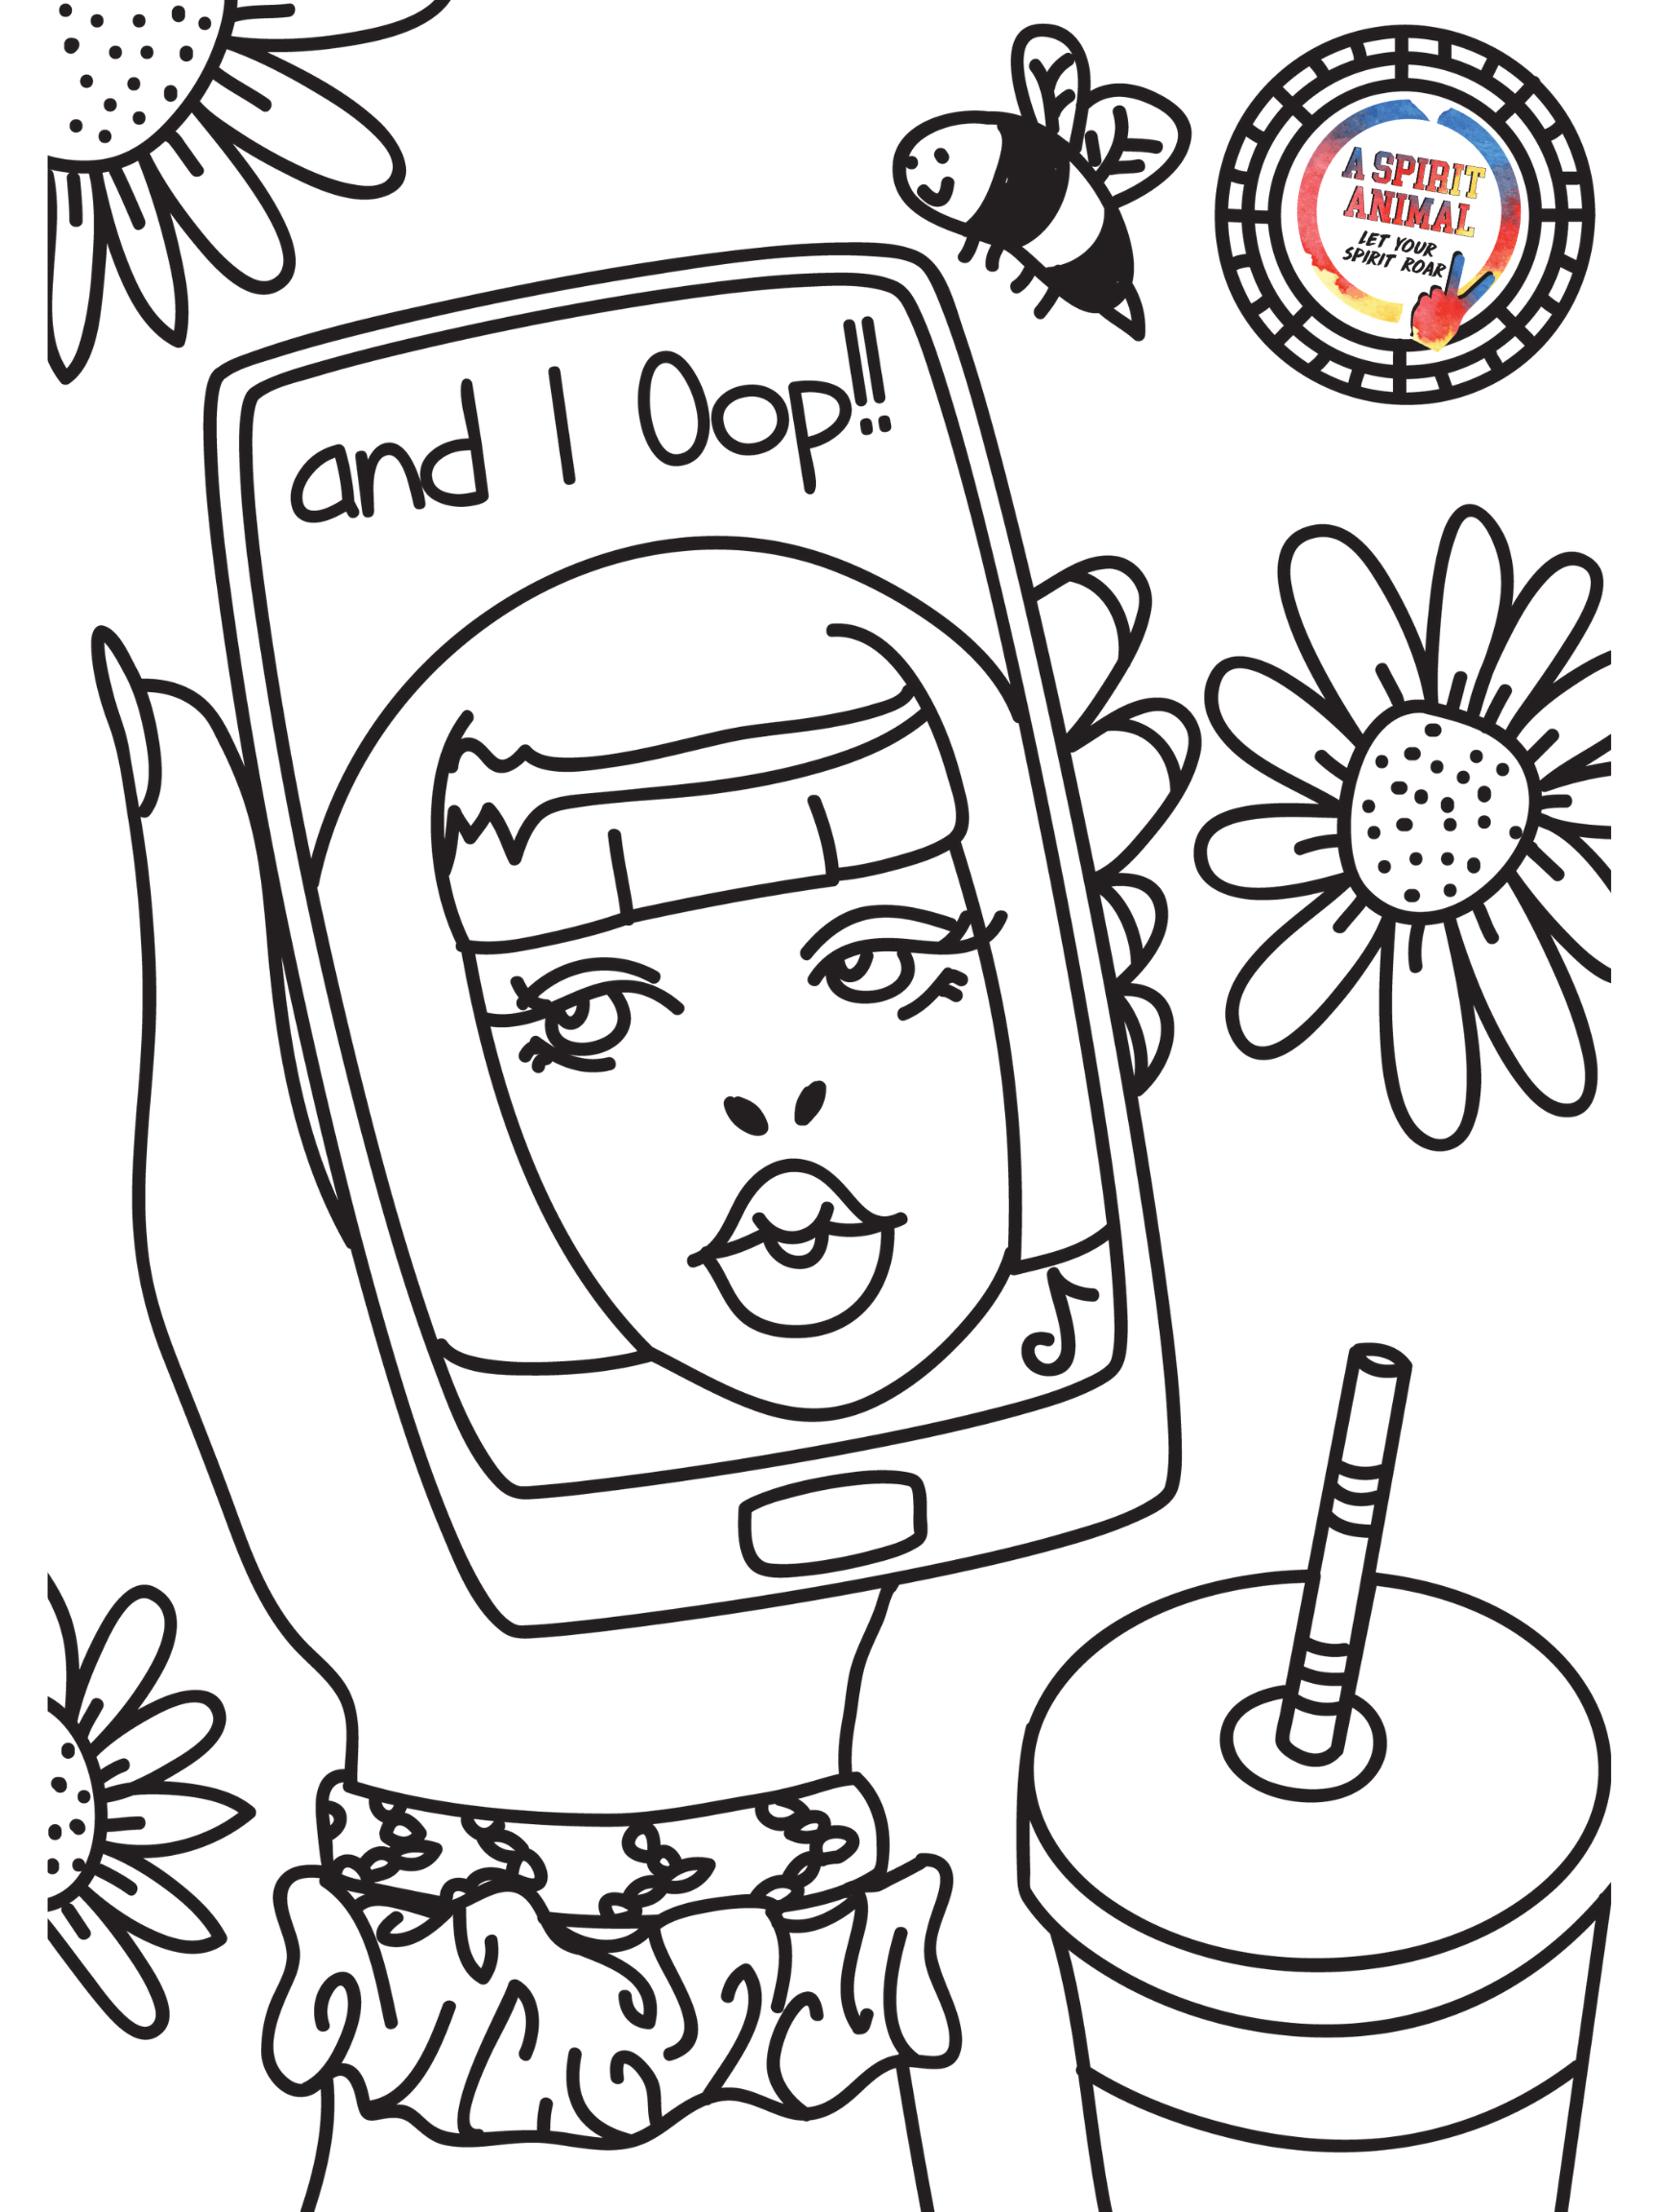 And I Oop VSCO coloring pages for girls who love using instagram and tie-tok.